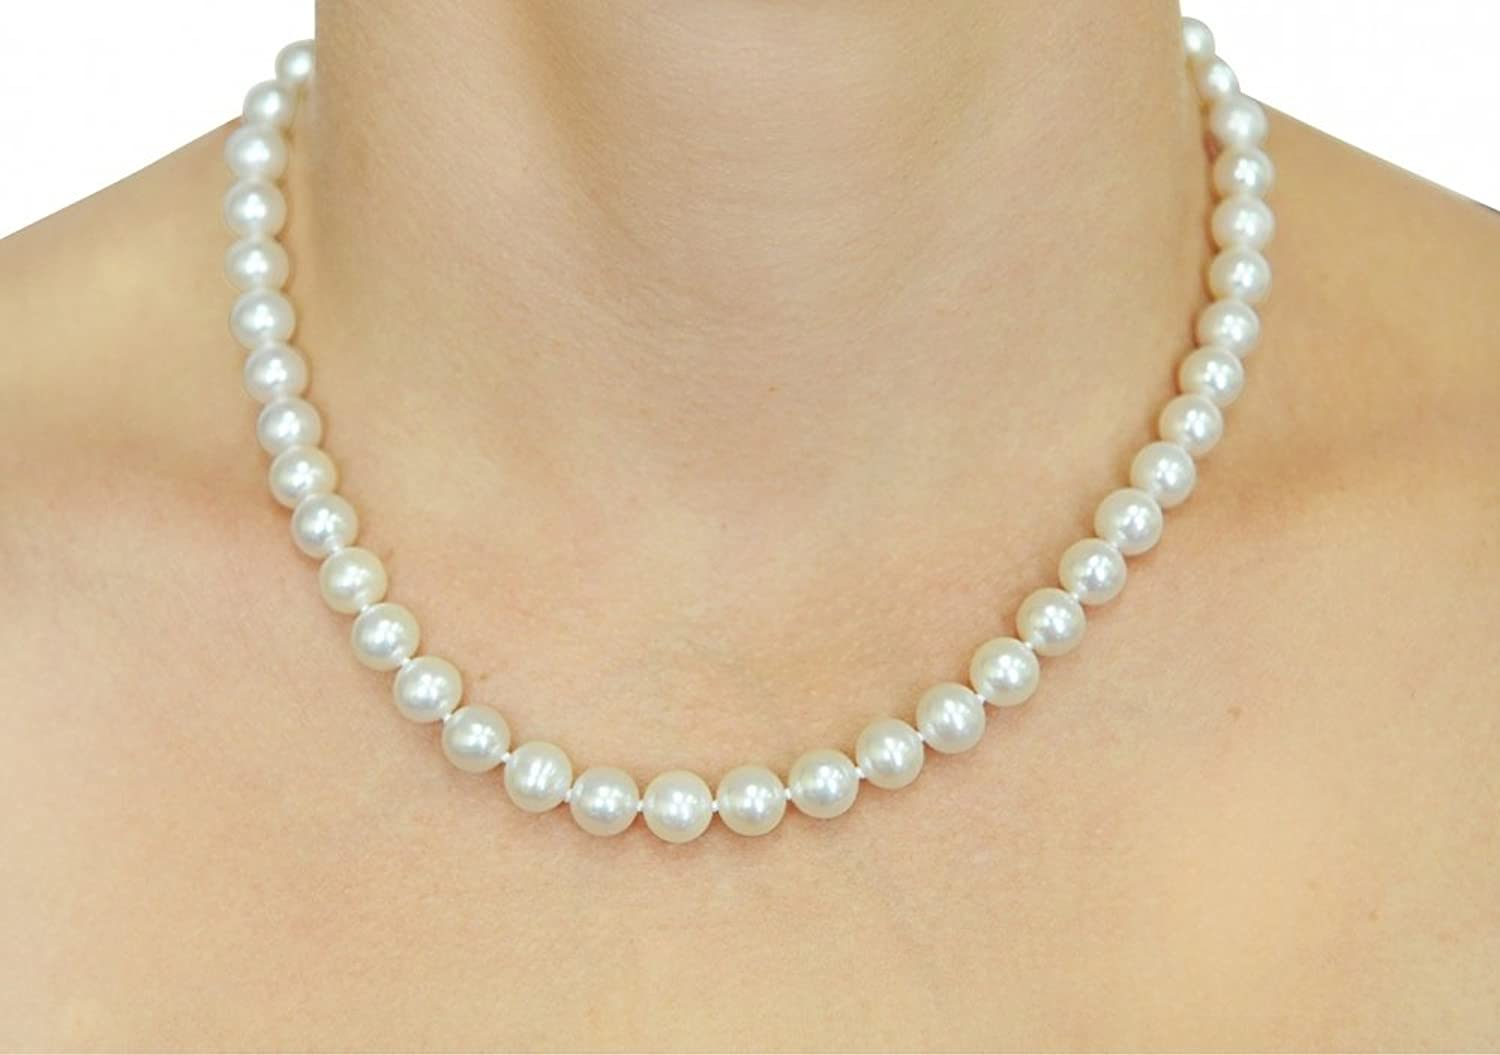 14K Gold White Freshwater Cultured Pearl Necklace - AAAA Quality, 18 Inch Princess Length